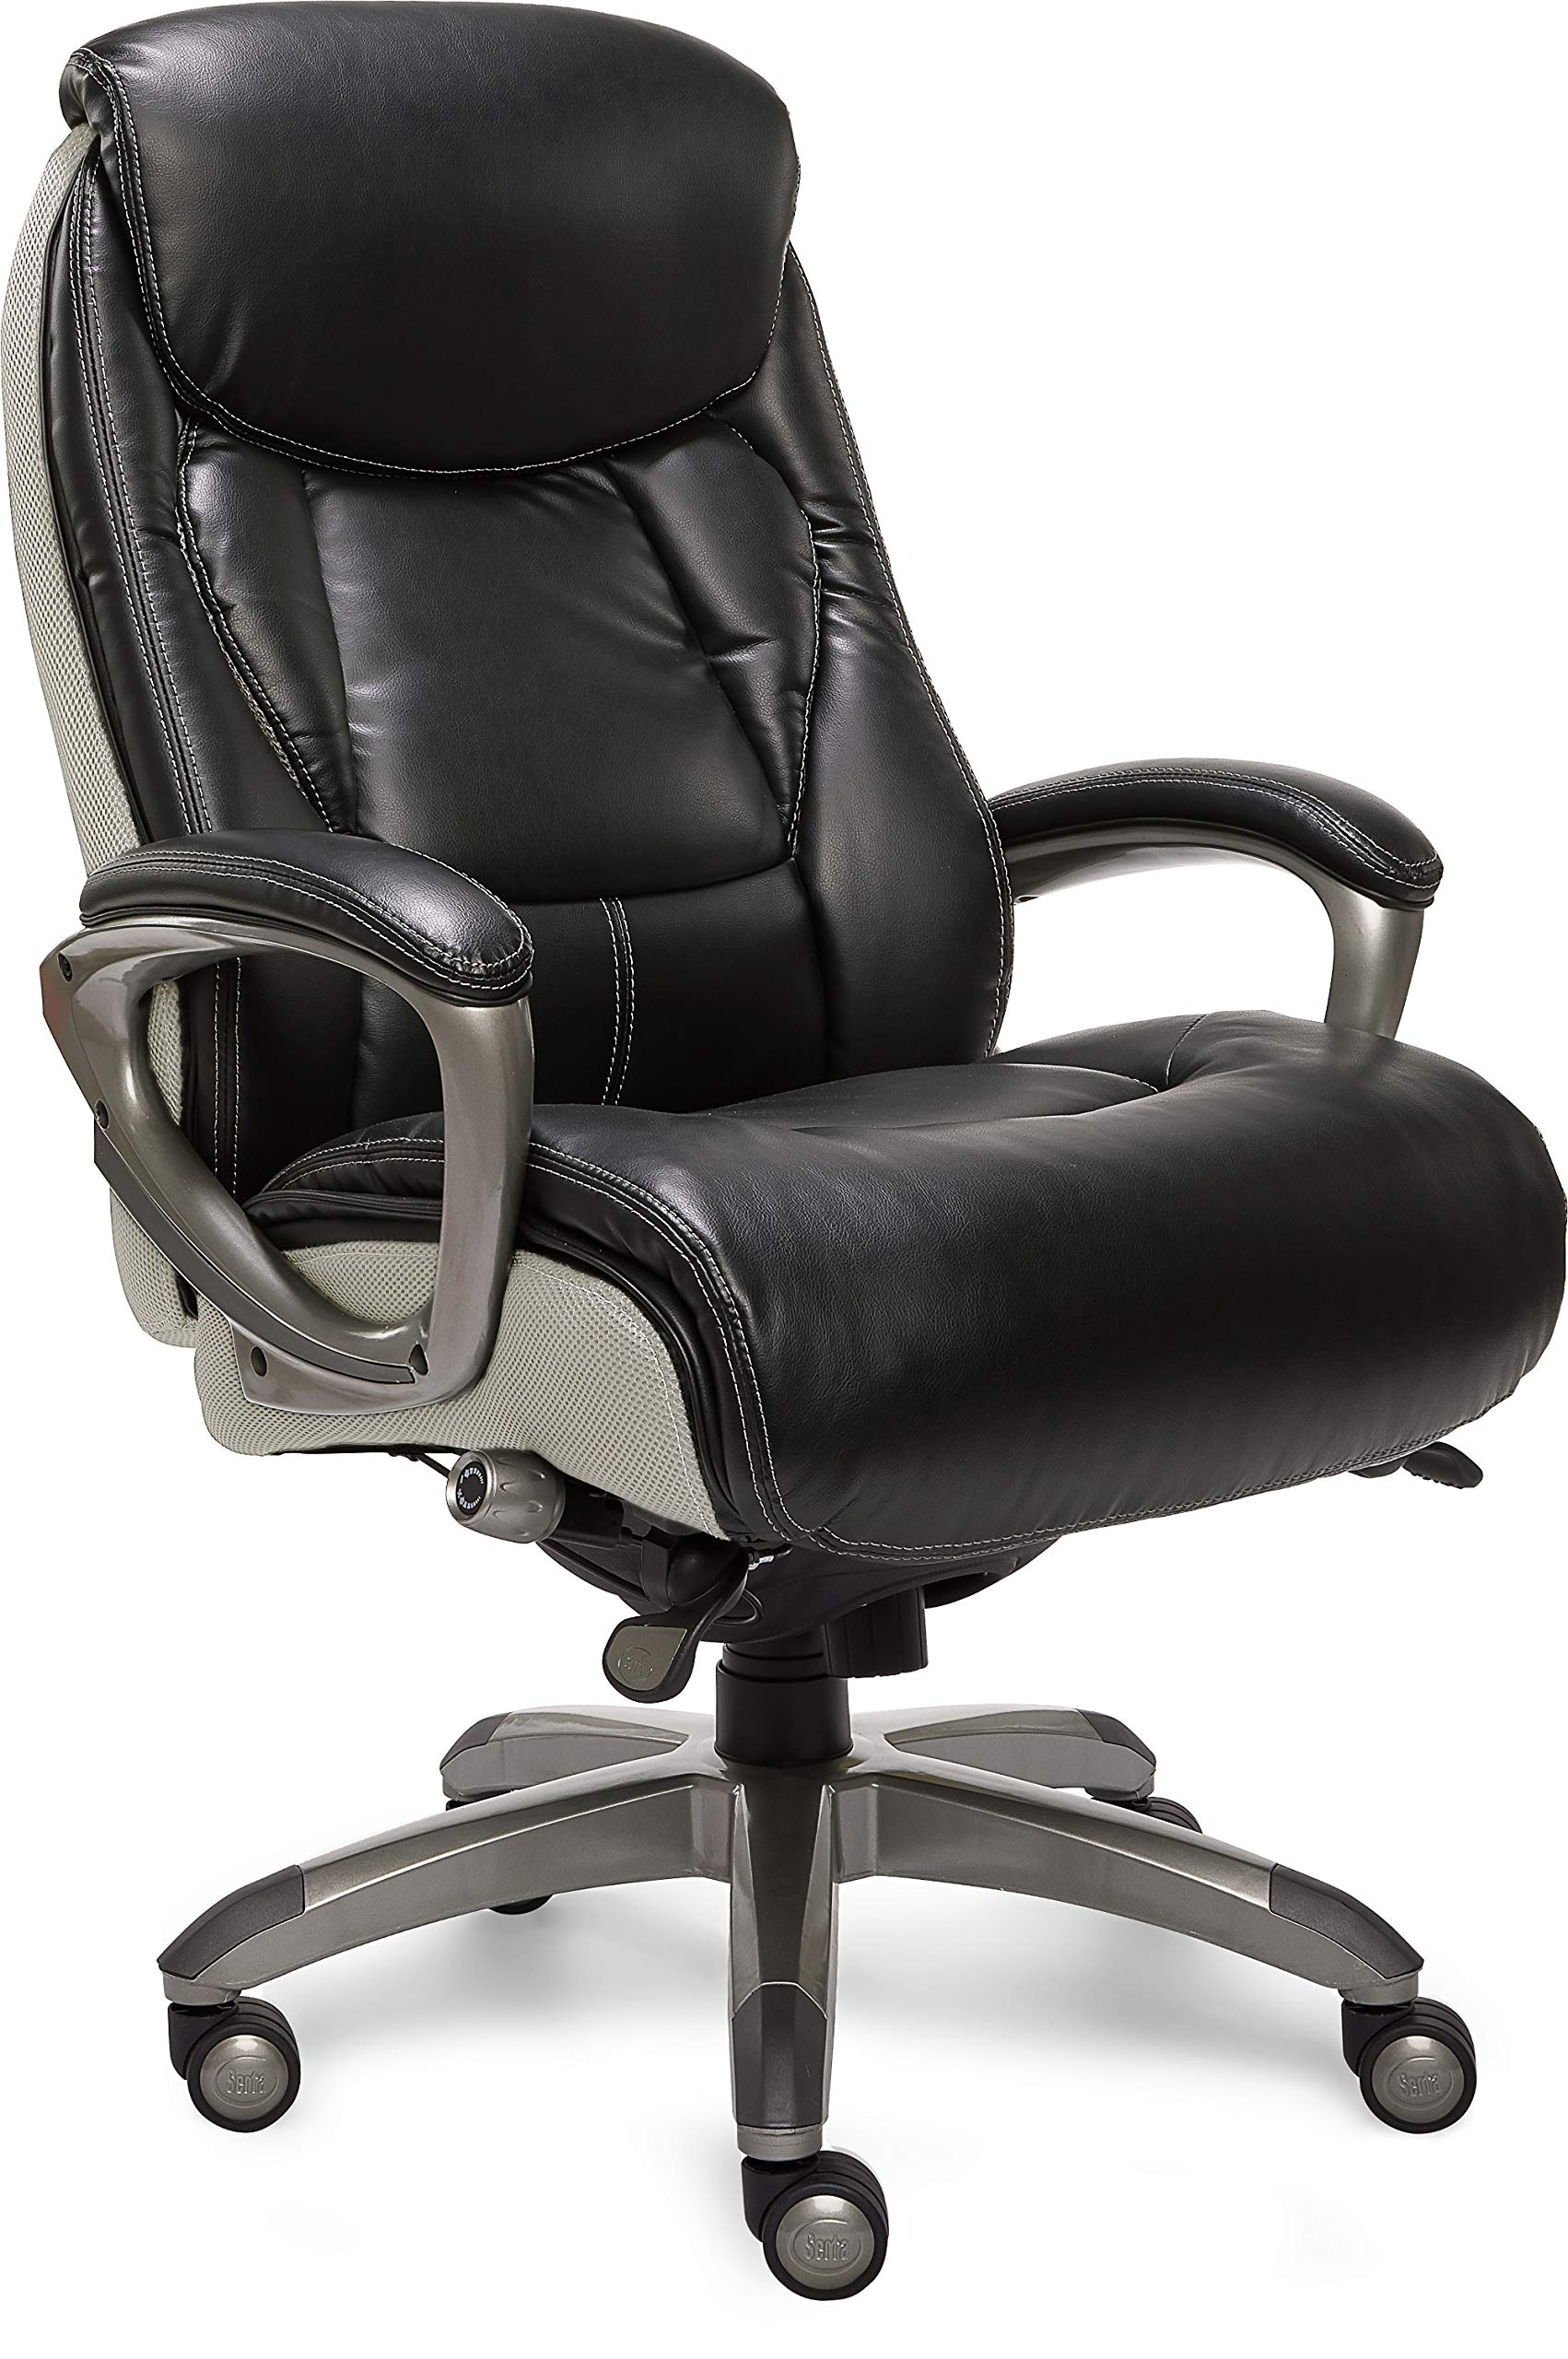 Serta 44942 Smart Layers Executive Tranquility Office Chair, Black by Serta